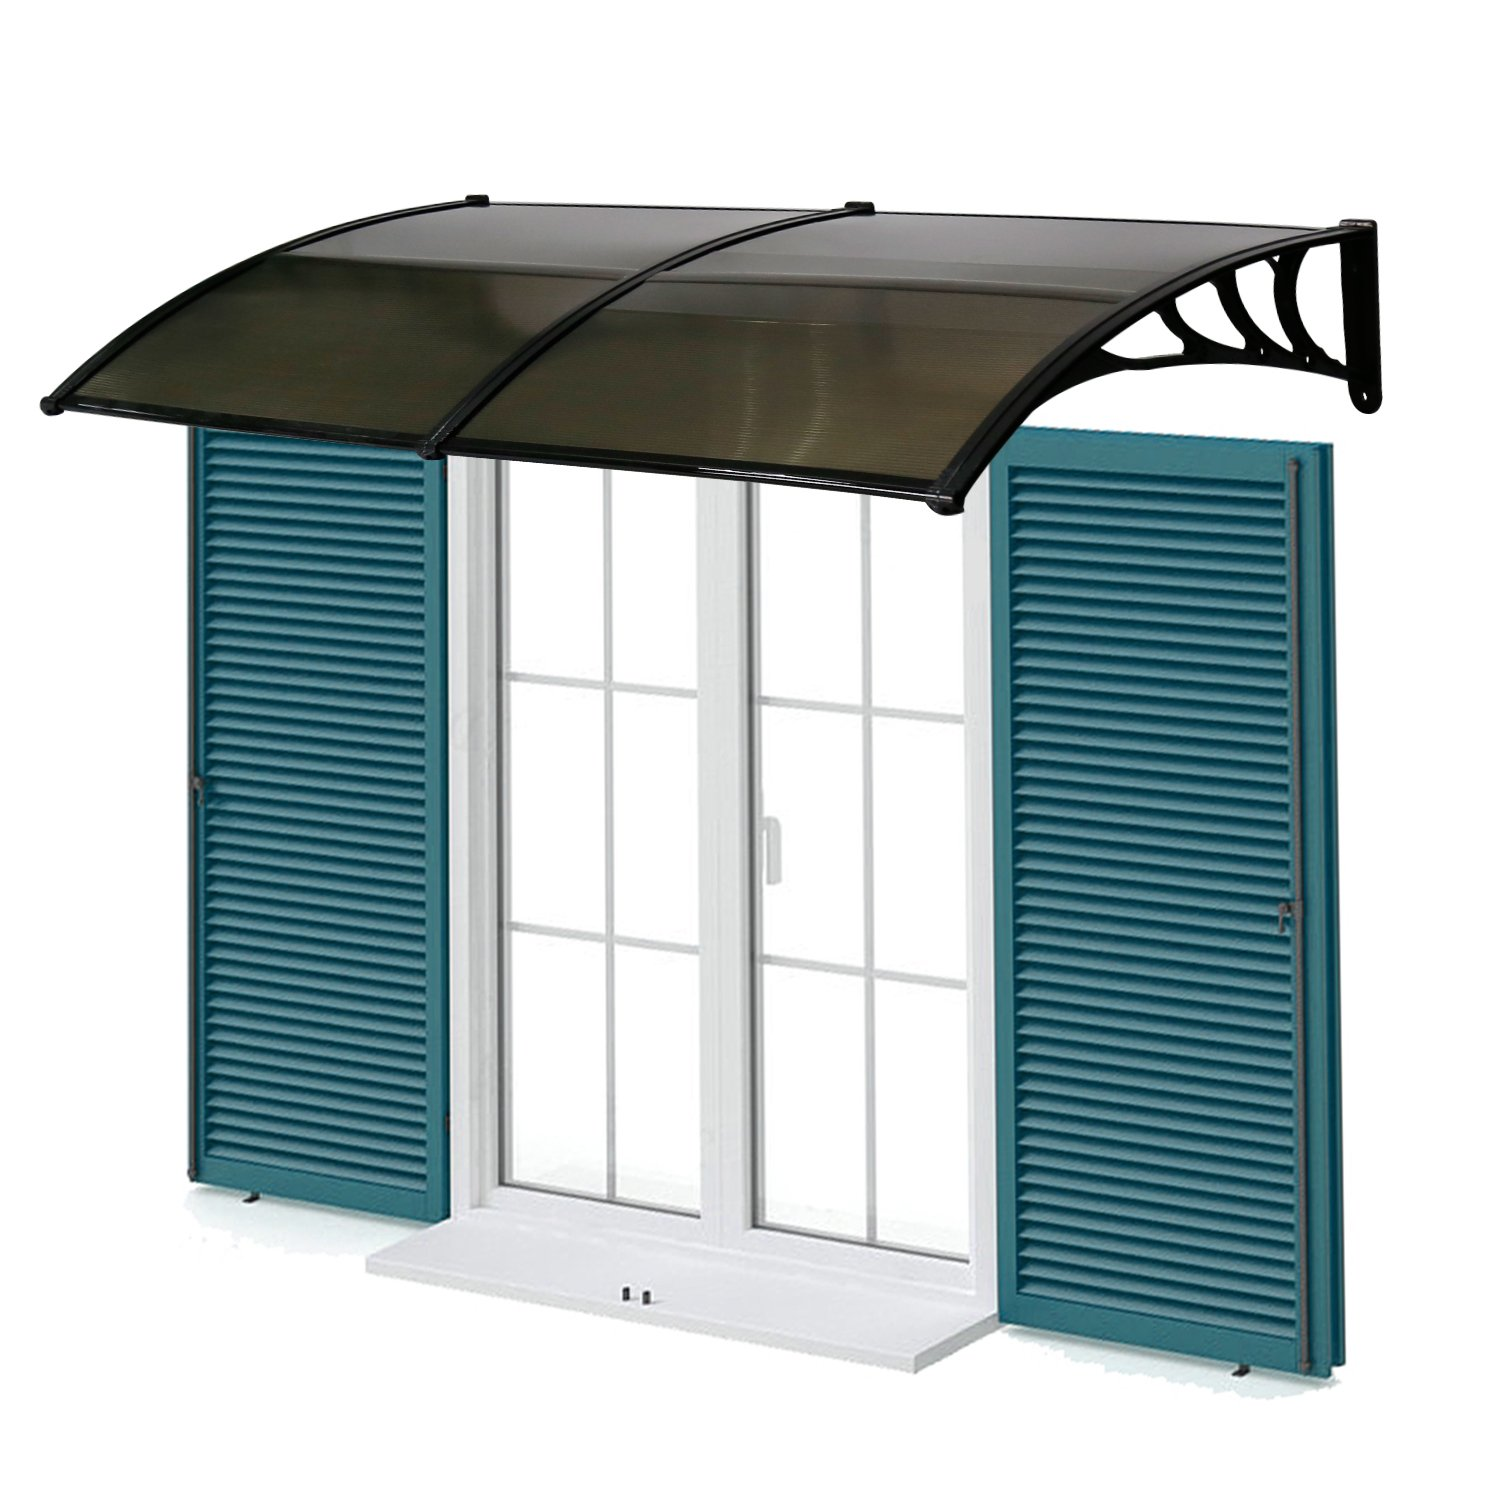 Kinbor Outdoor Door Window Outdoor Awning Solid Polycarbonate Patio Sunshade Cover Canopy Arc-Shape Rain Shelter (40x80, Brown)